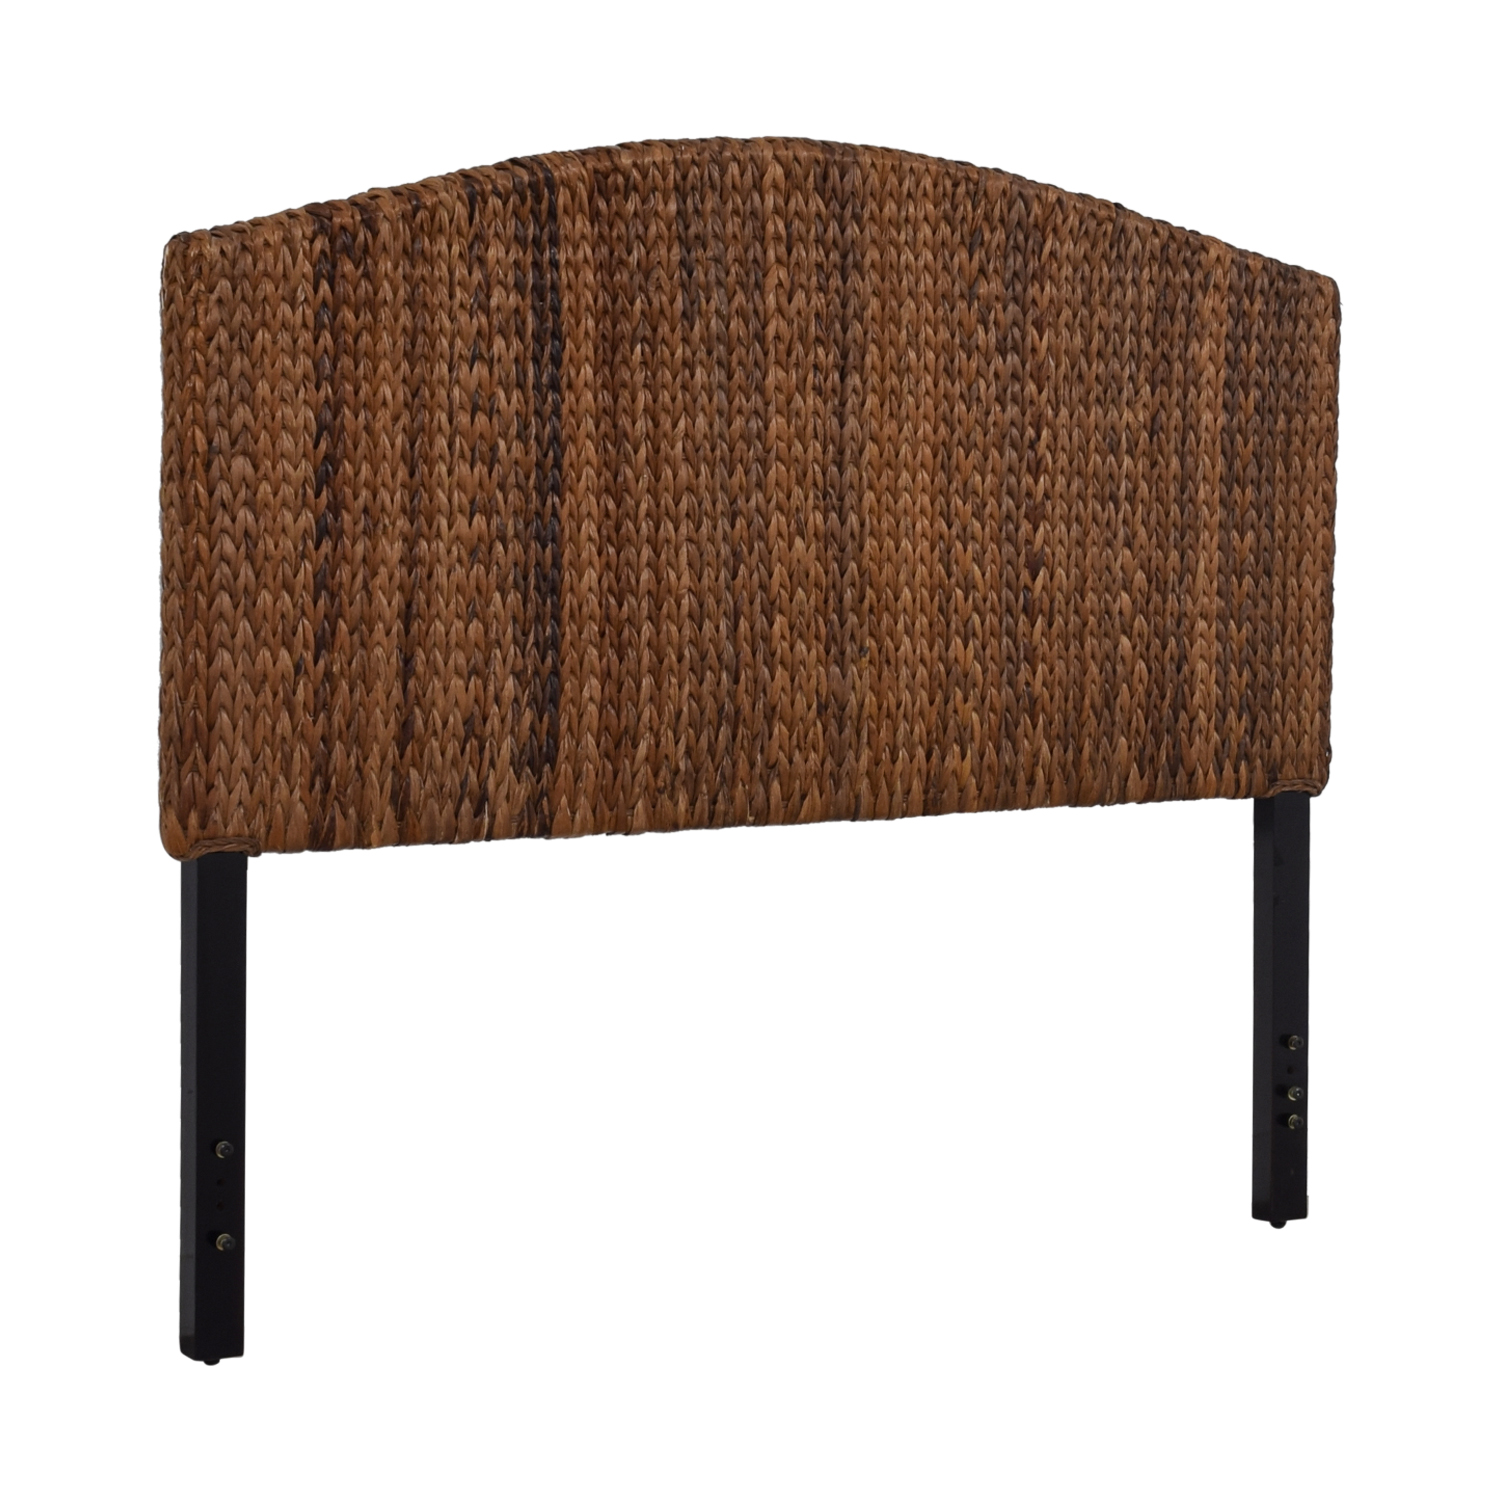 shop Espresso Banana Leaf Woven Queen Headboard